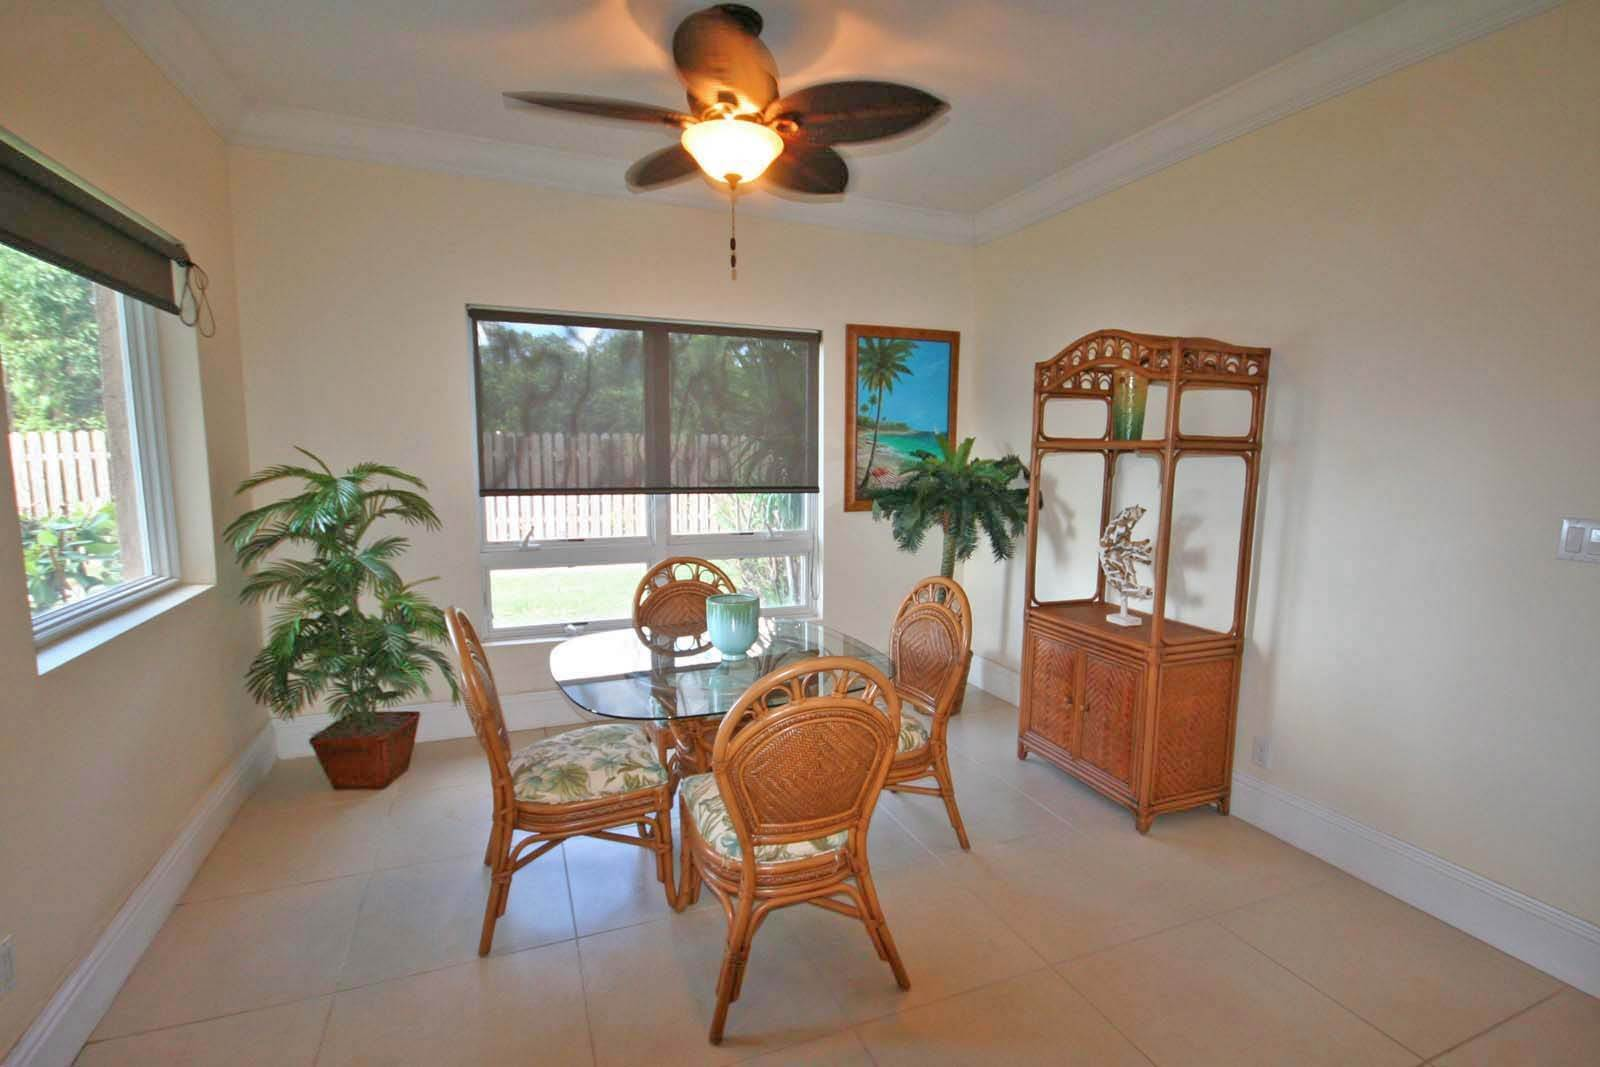 4. Co-op / Condo for Rent at Luxurious Waterfront 1-Bedroom Condominium in Gorgeous Suffolk Court Bahamia Marina, Freeport And Grand Bahama, Bahamas